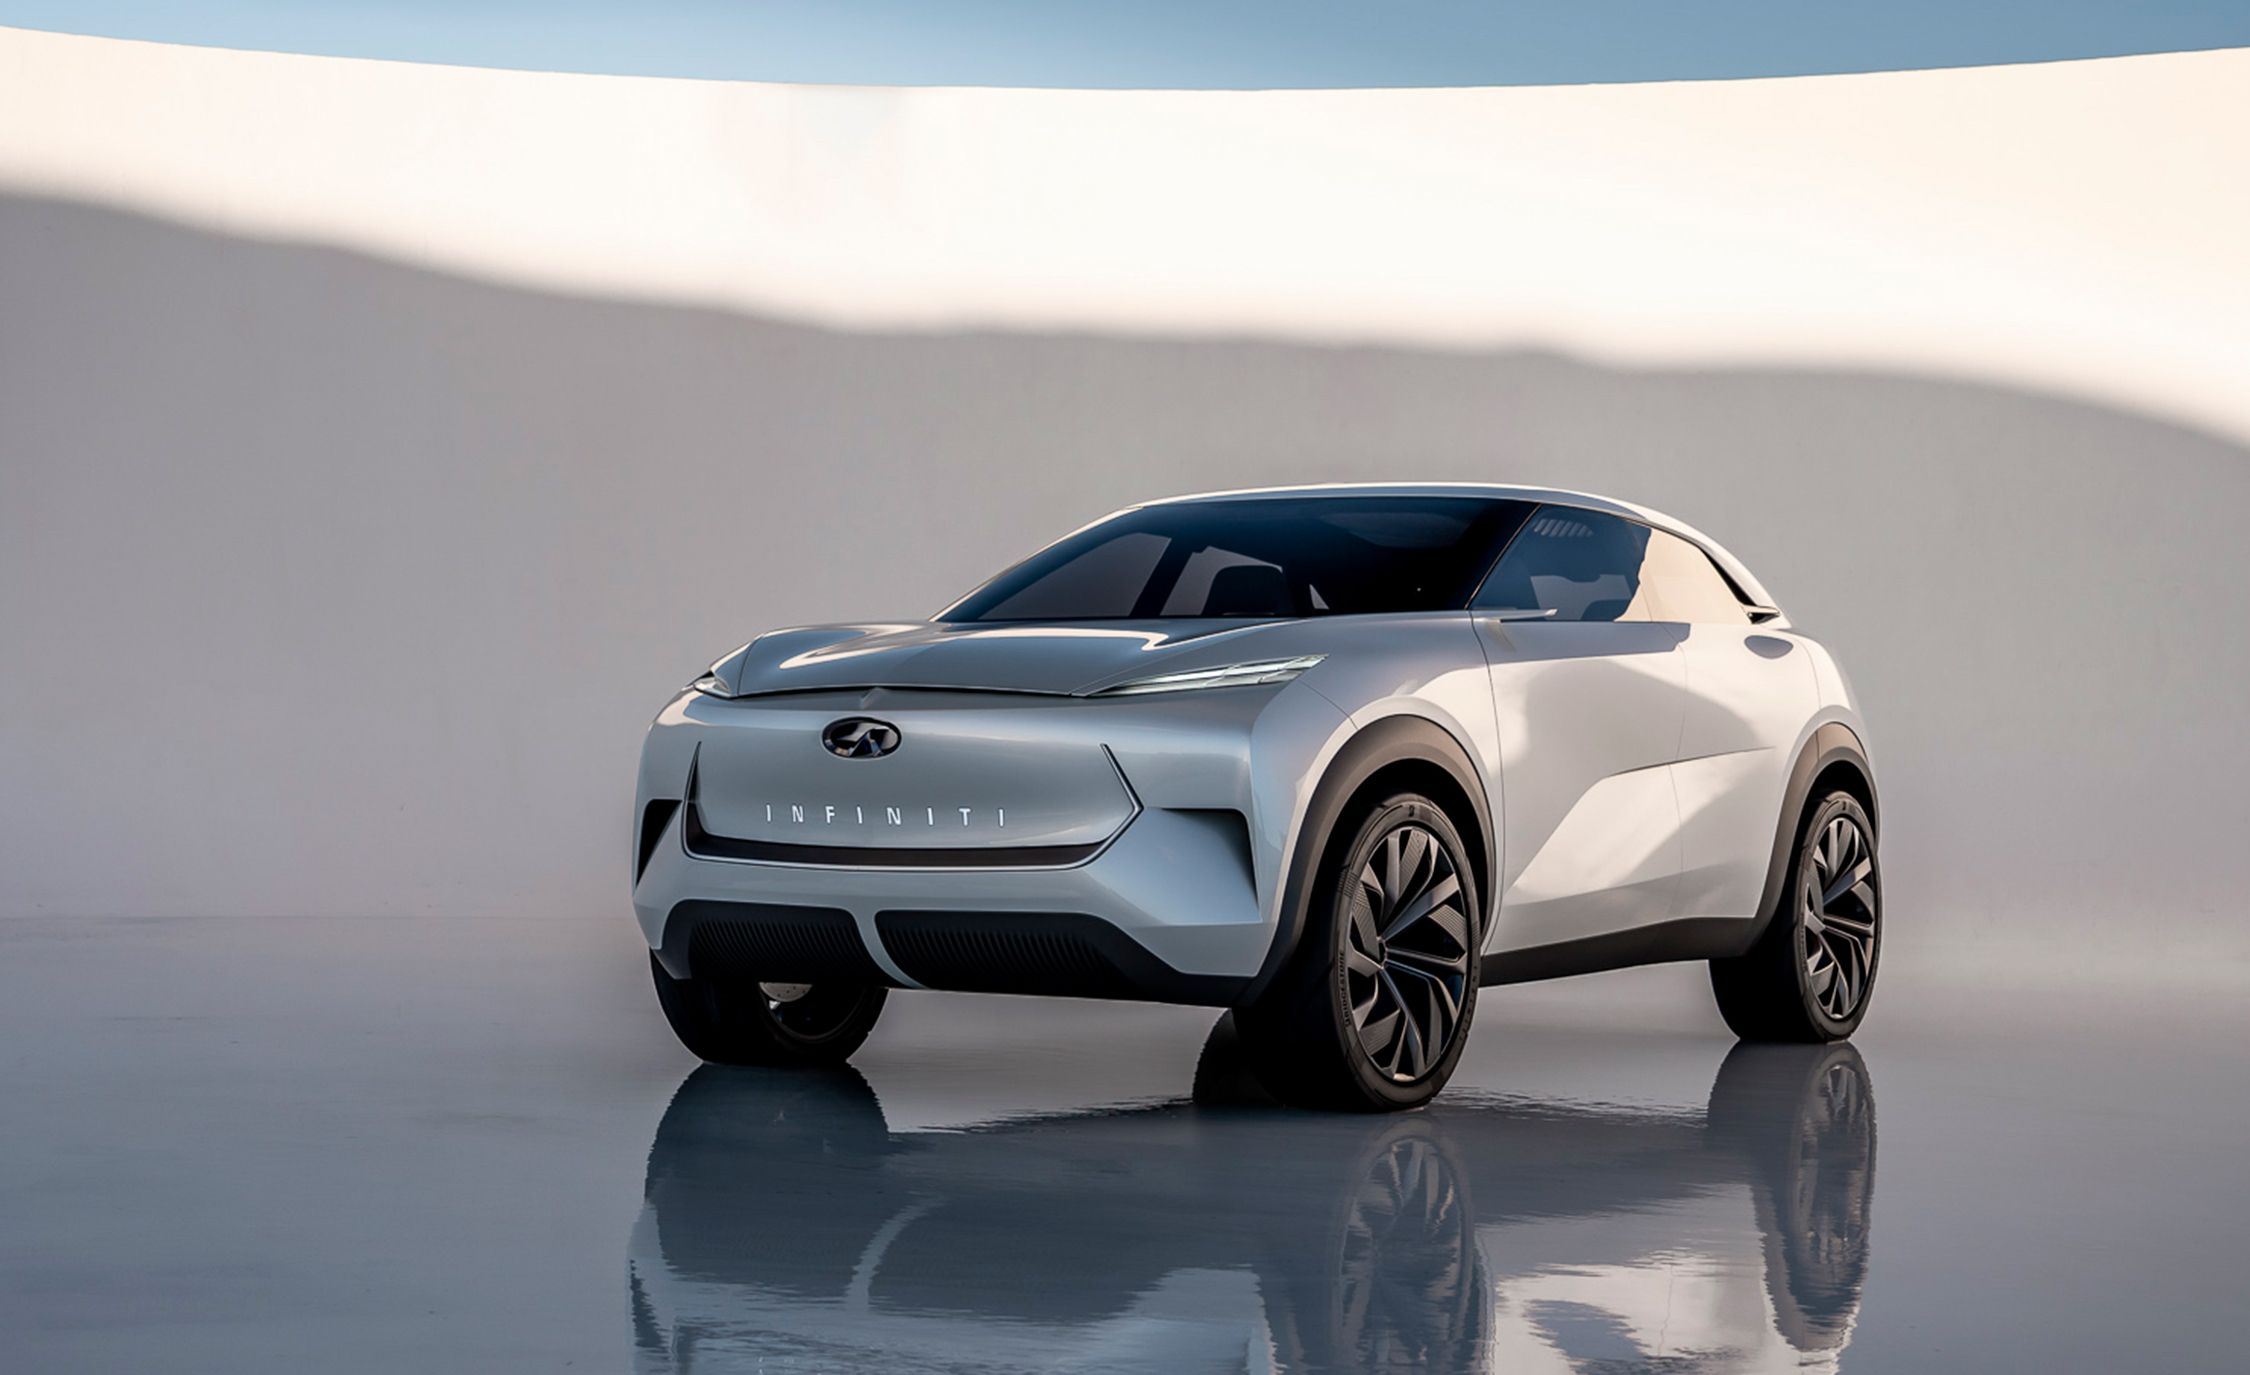 The Infiniti Qx Inspiration Concept Previews A Production Electric Crossover And Ev Platform